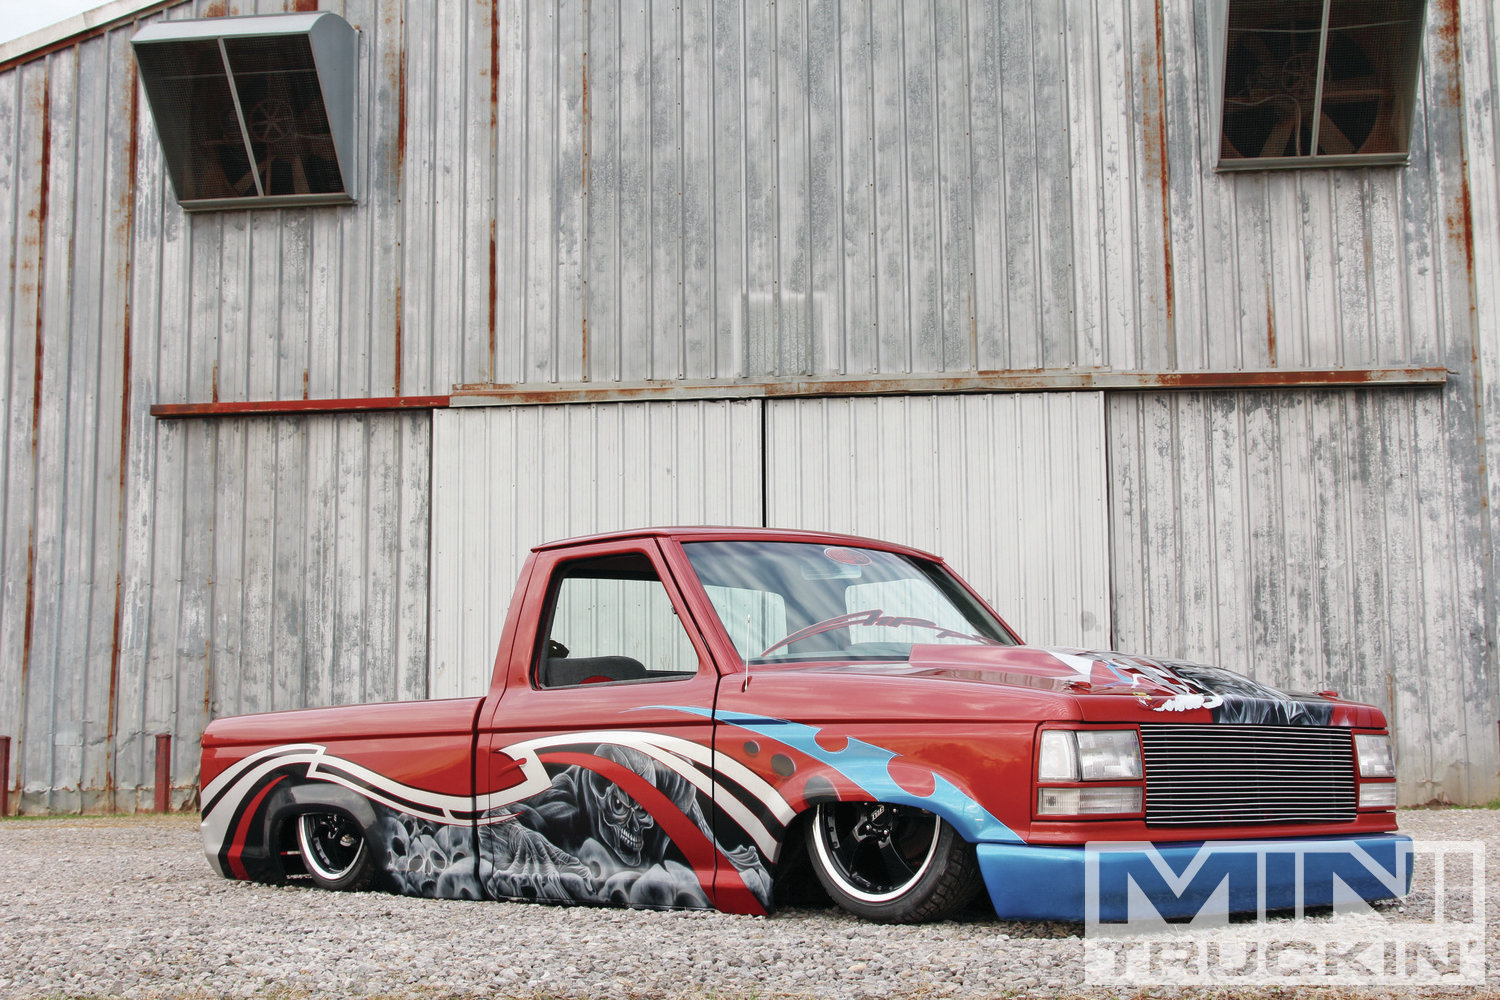 1992 Ford Ranger - The Recluse